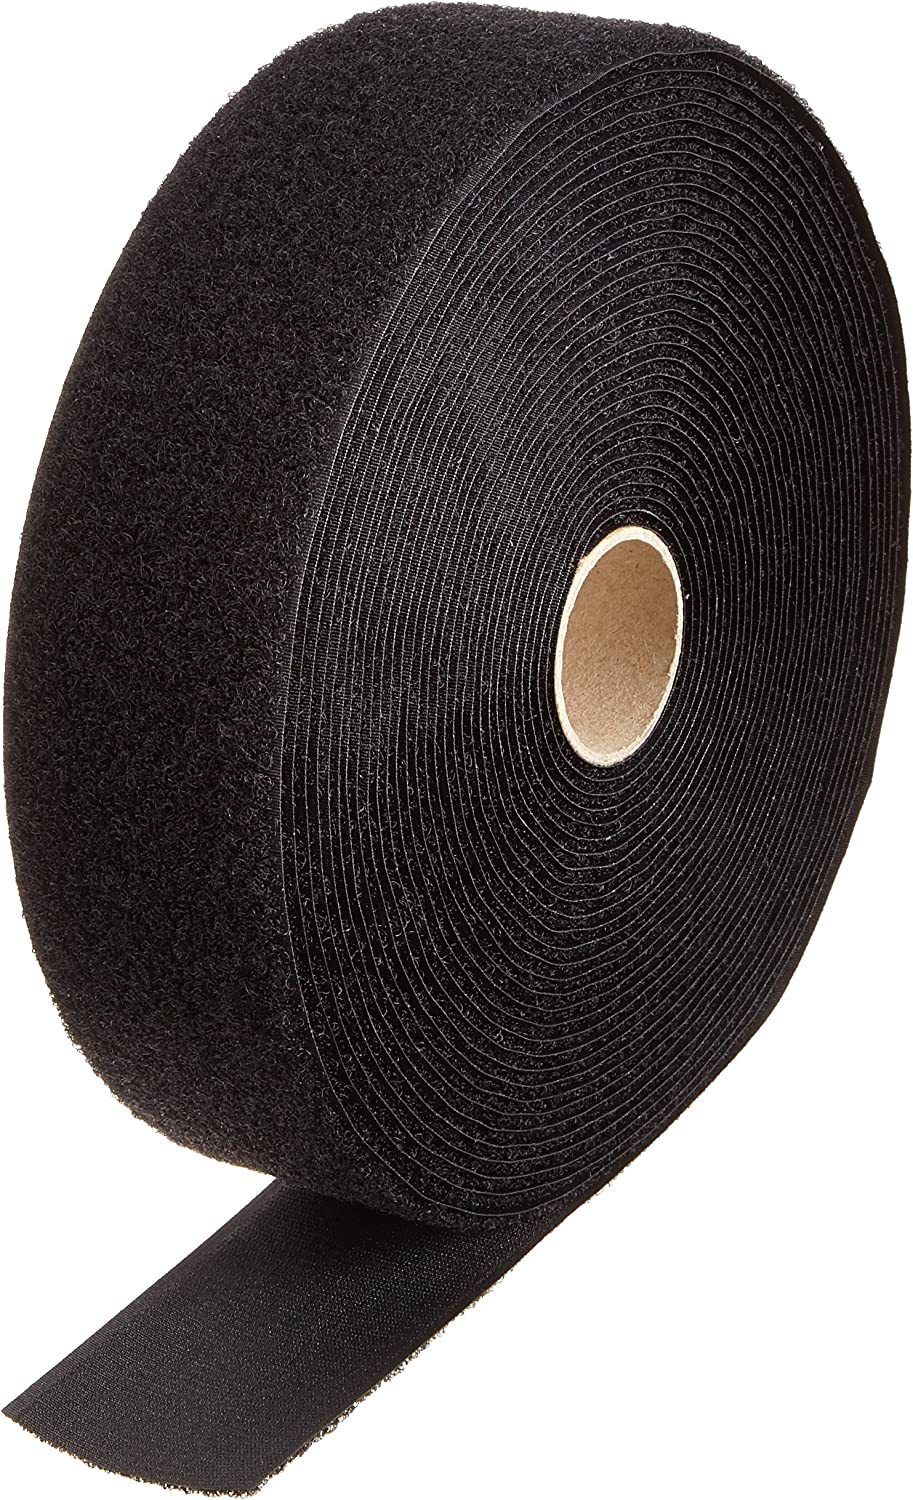 20MM-50MM Black /& White Adhesive Hook and Loop Tape Sew-On Craft Fastener